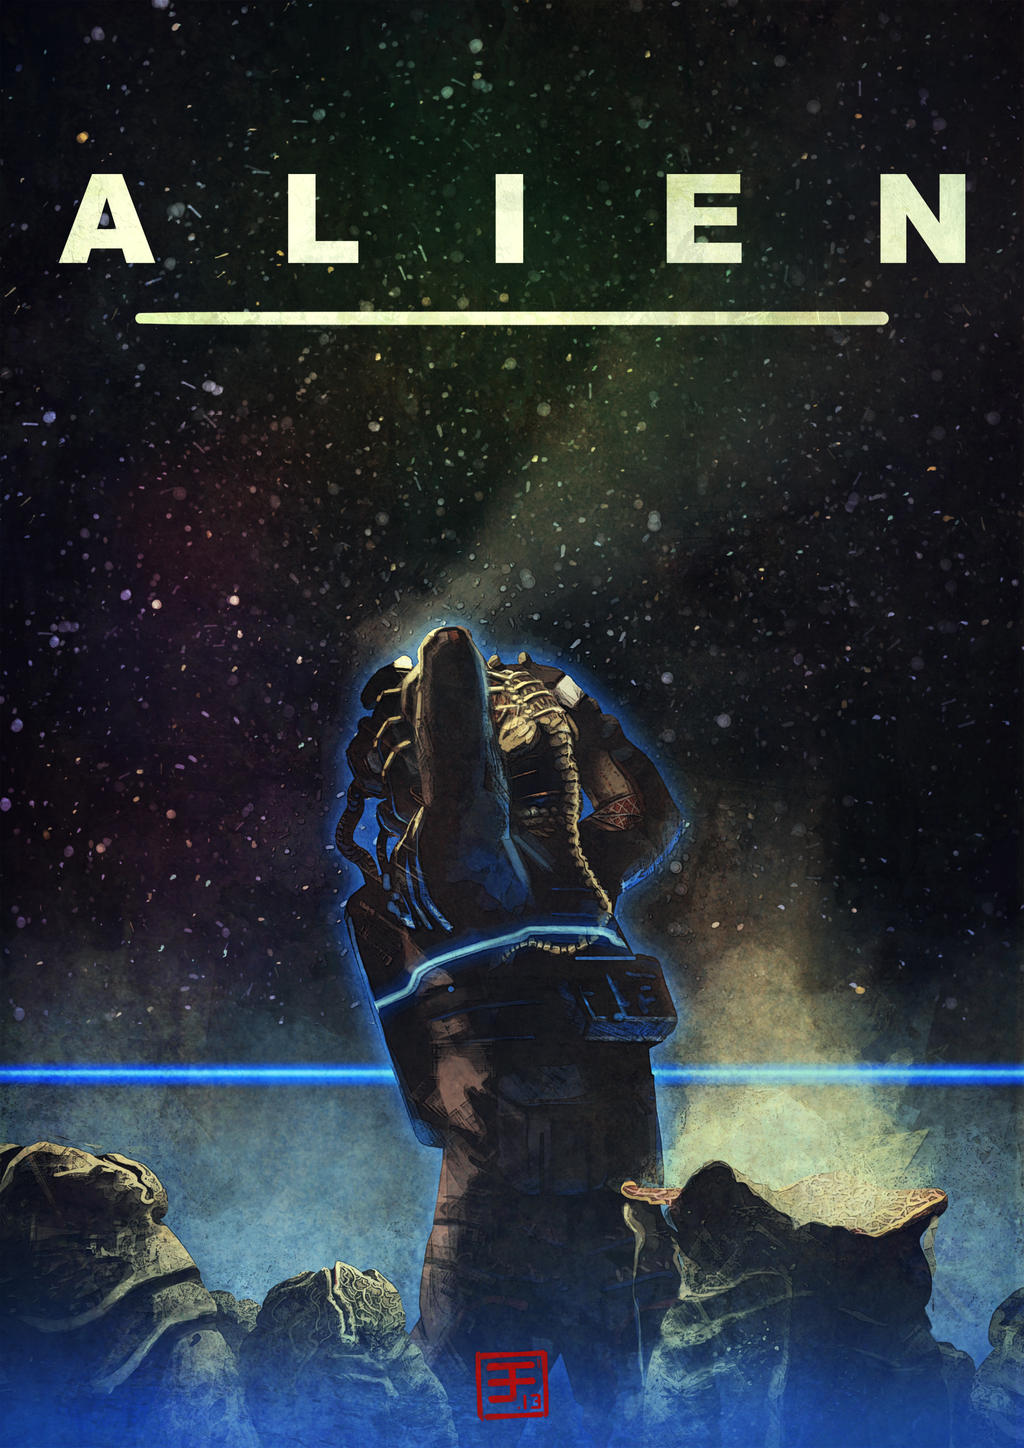 Alien by Syrphin